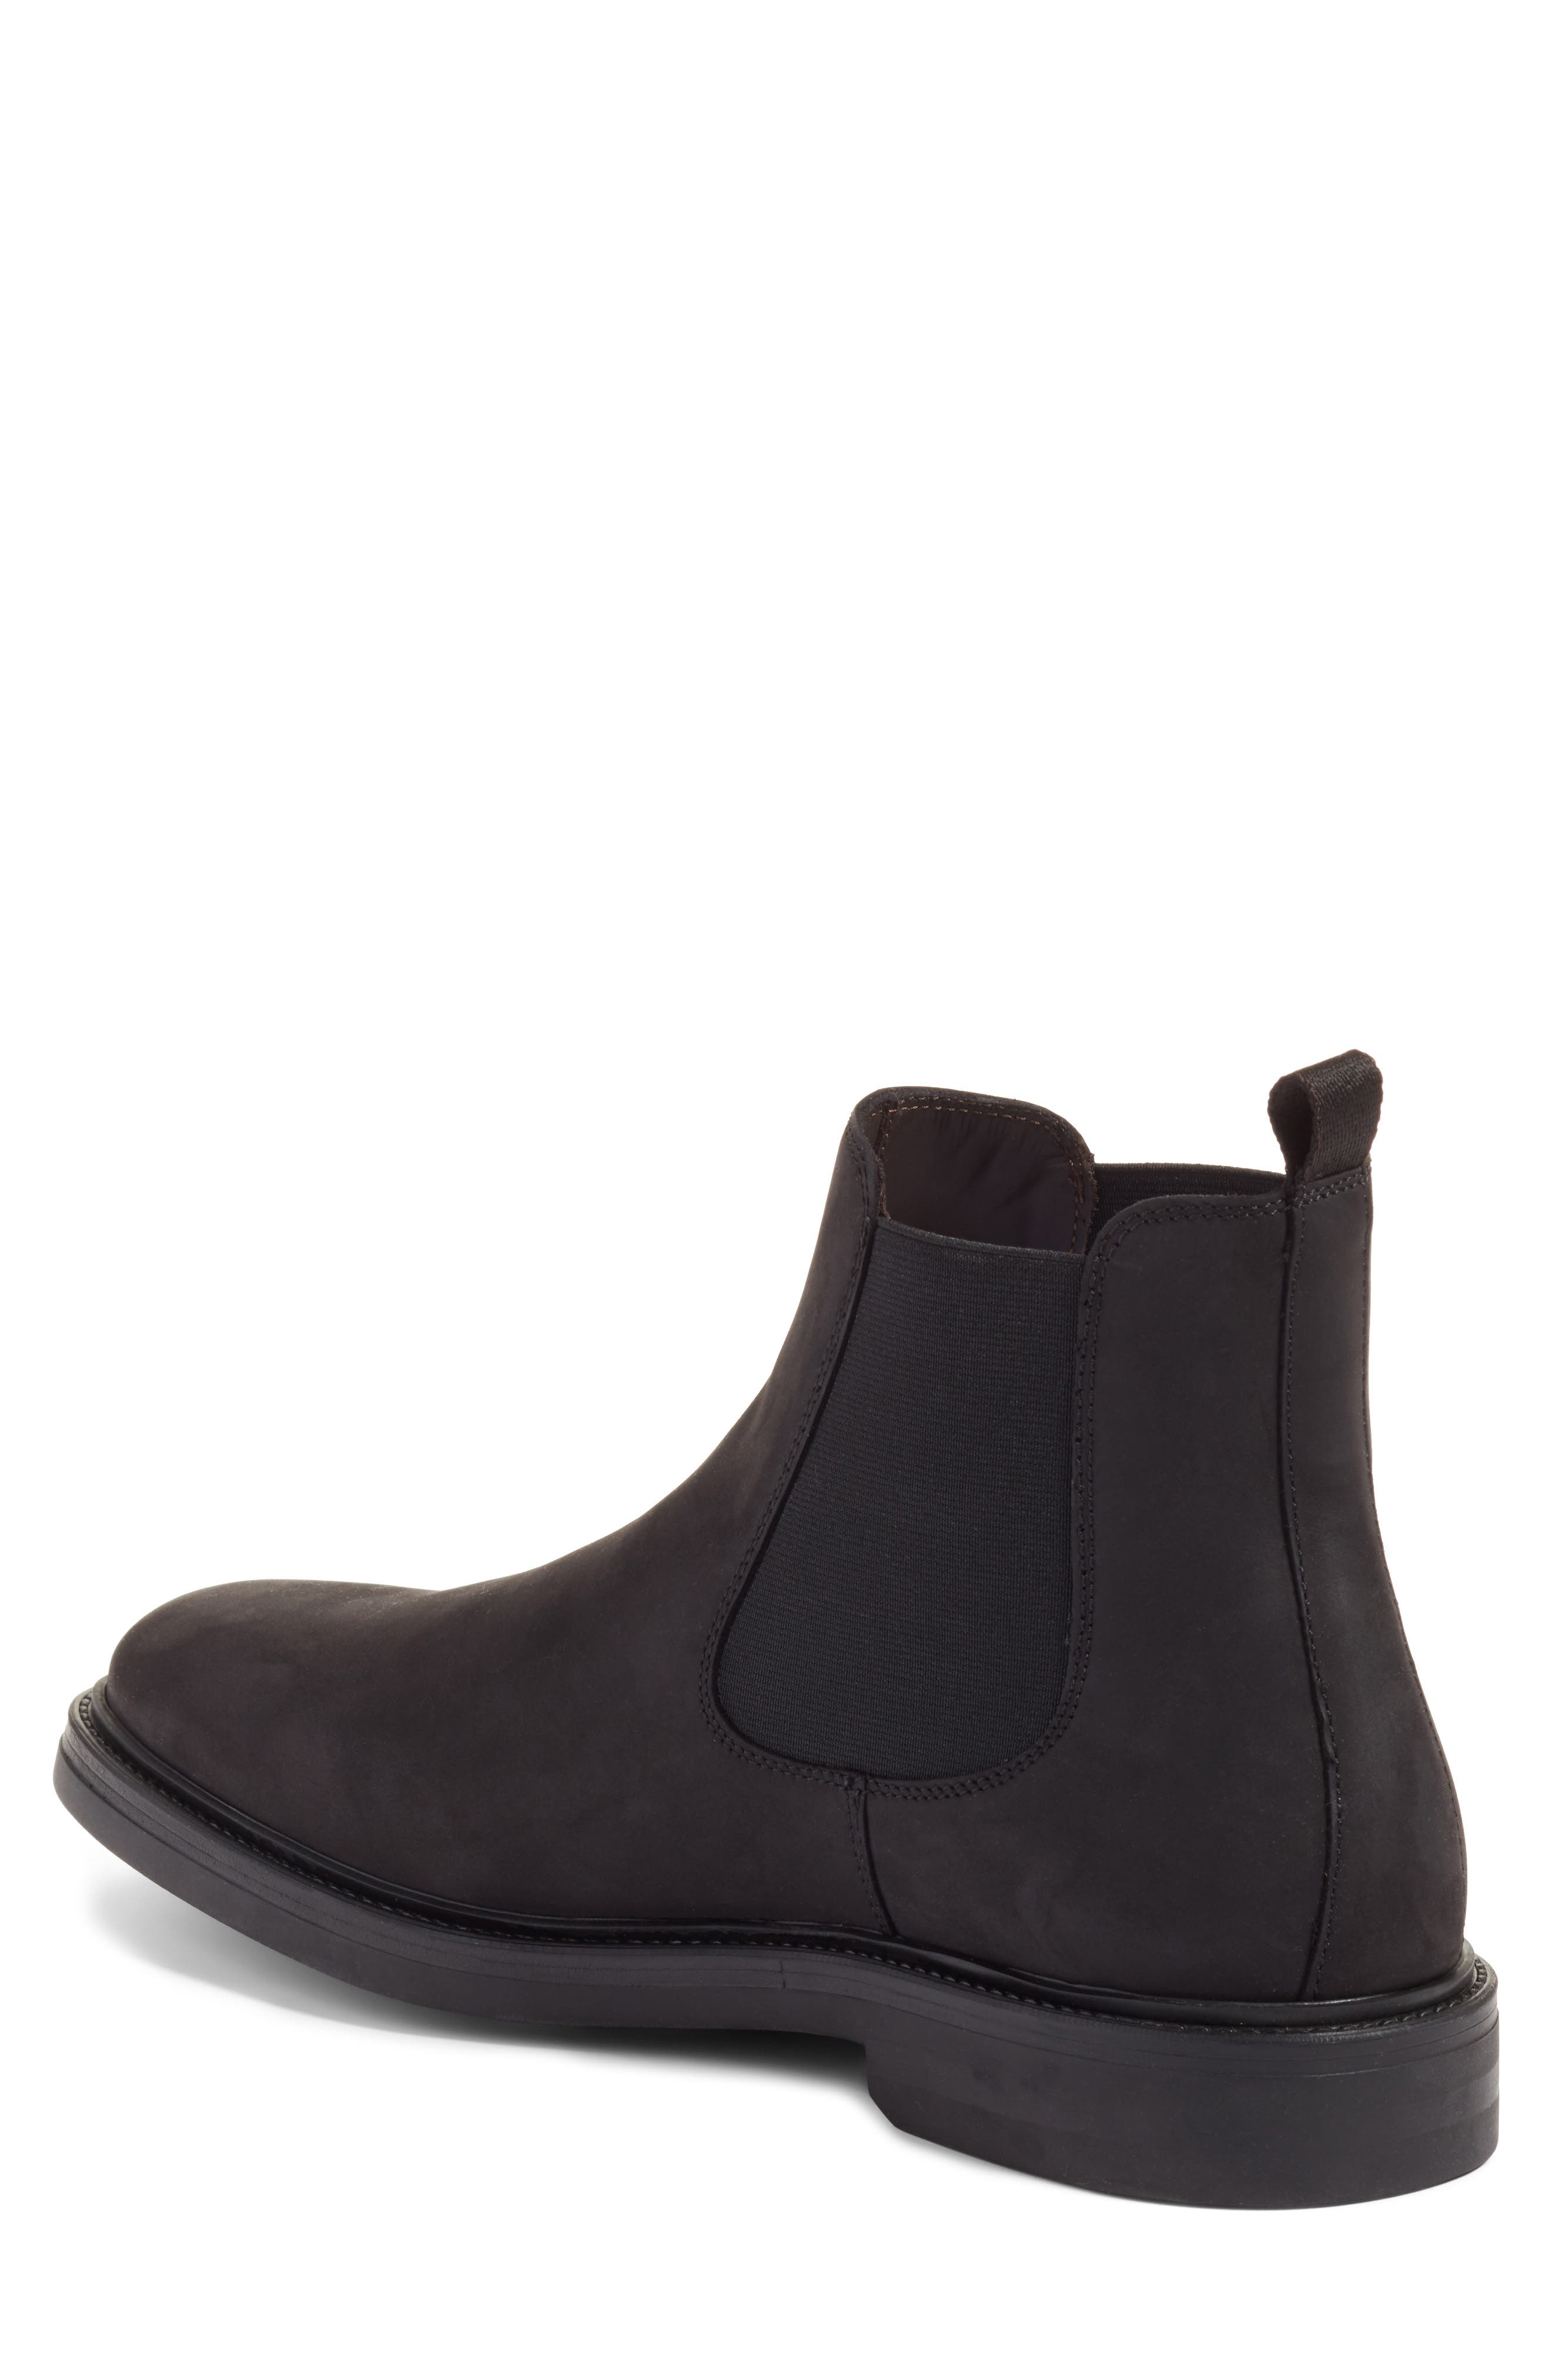 Chelsea Boot,                             Alternate thumbnail 2, color,                             002